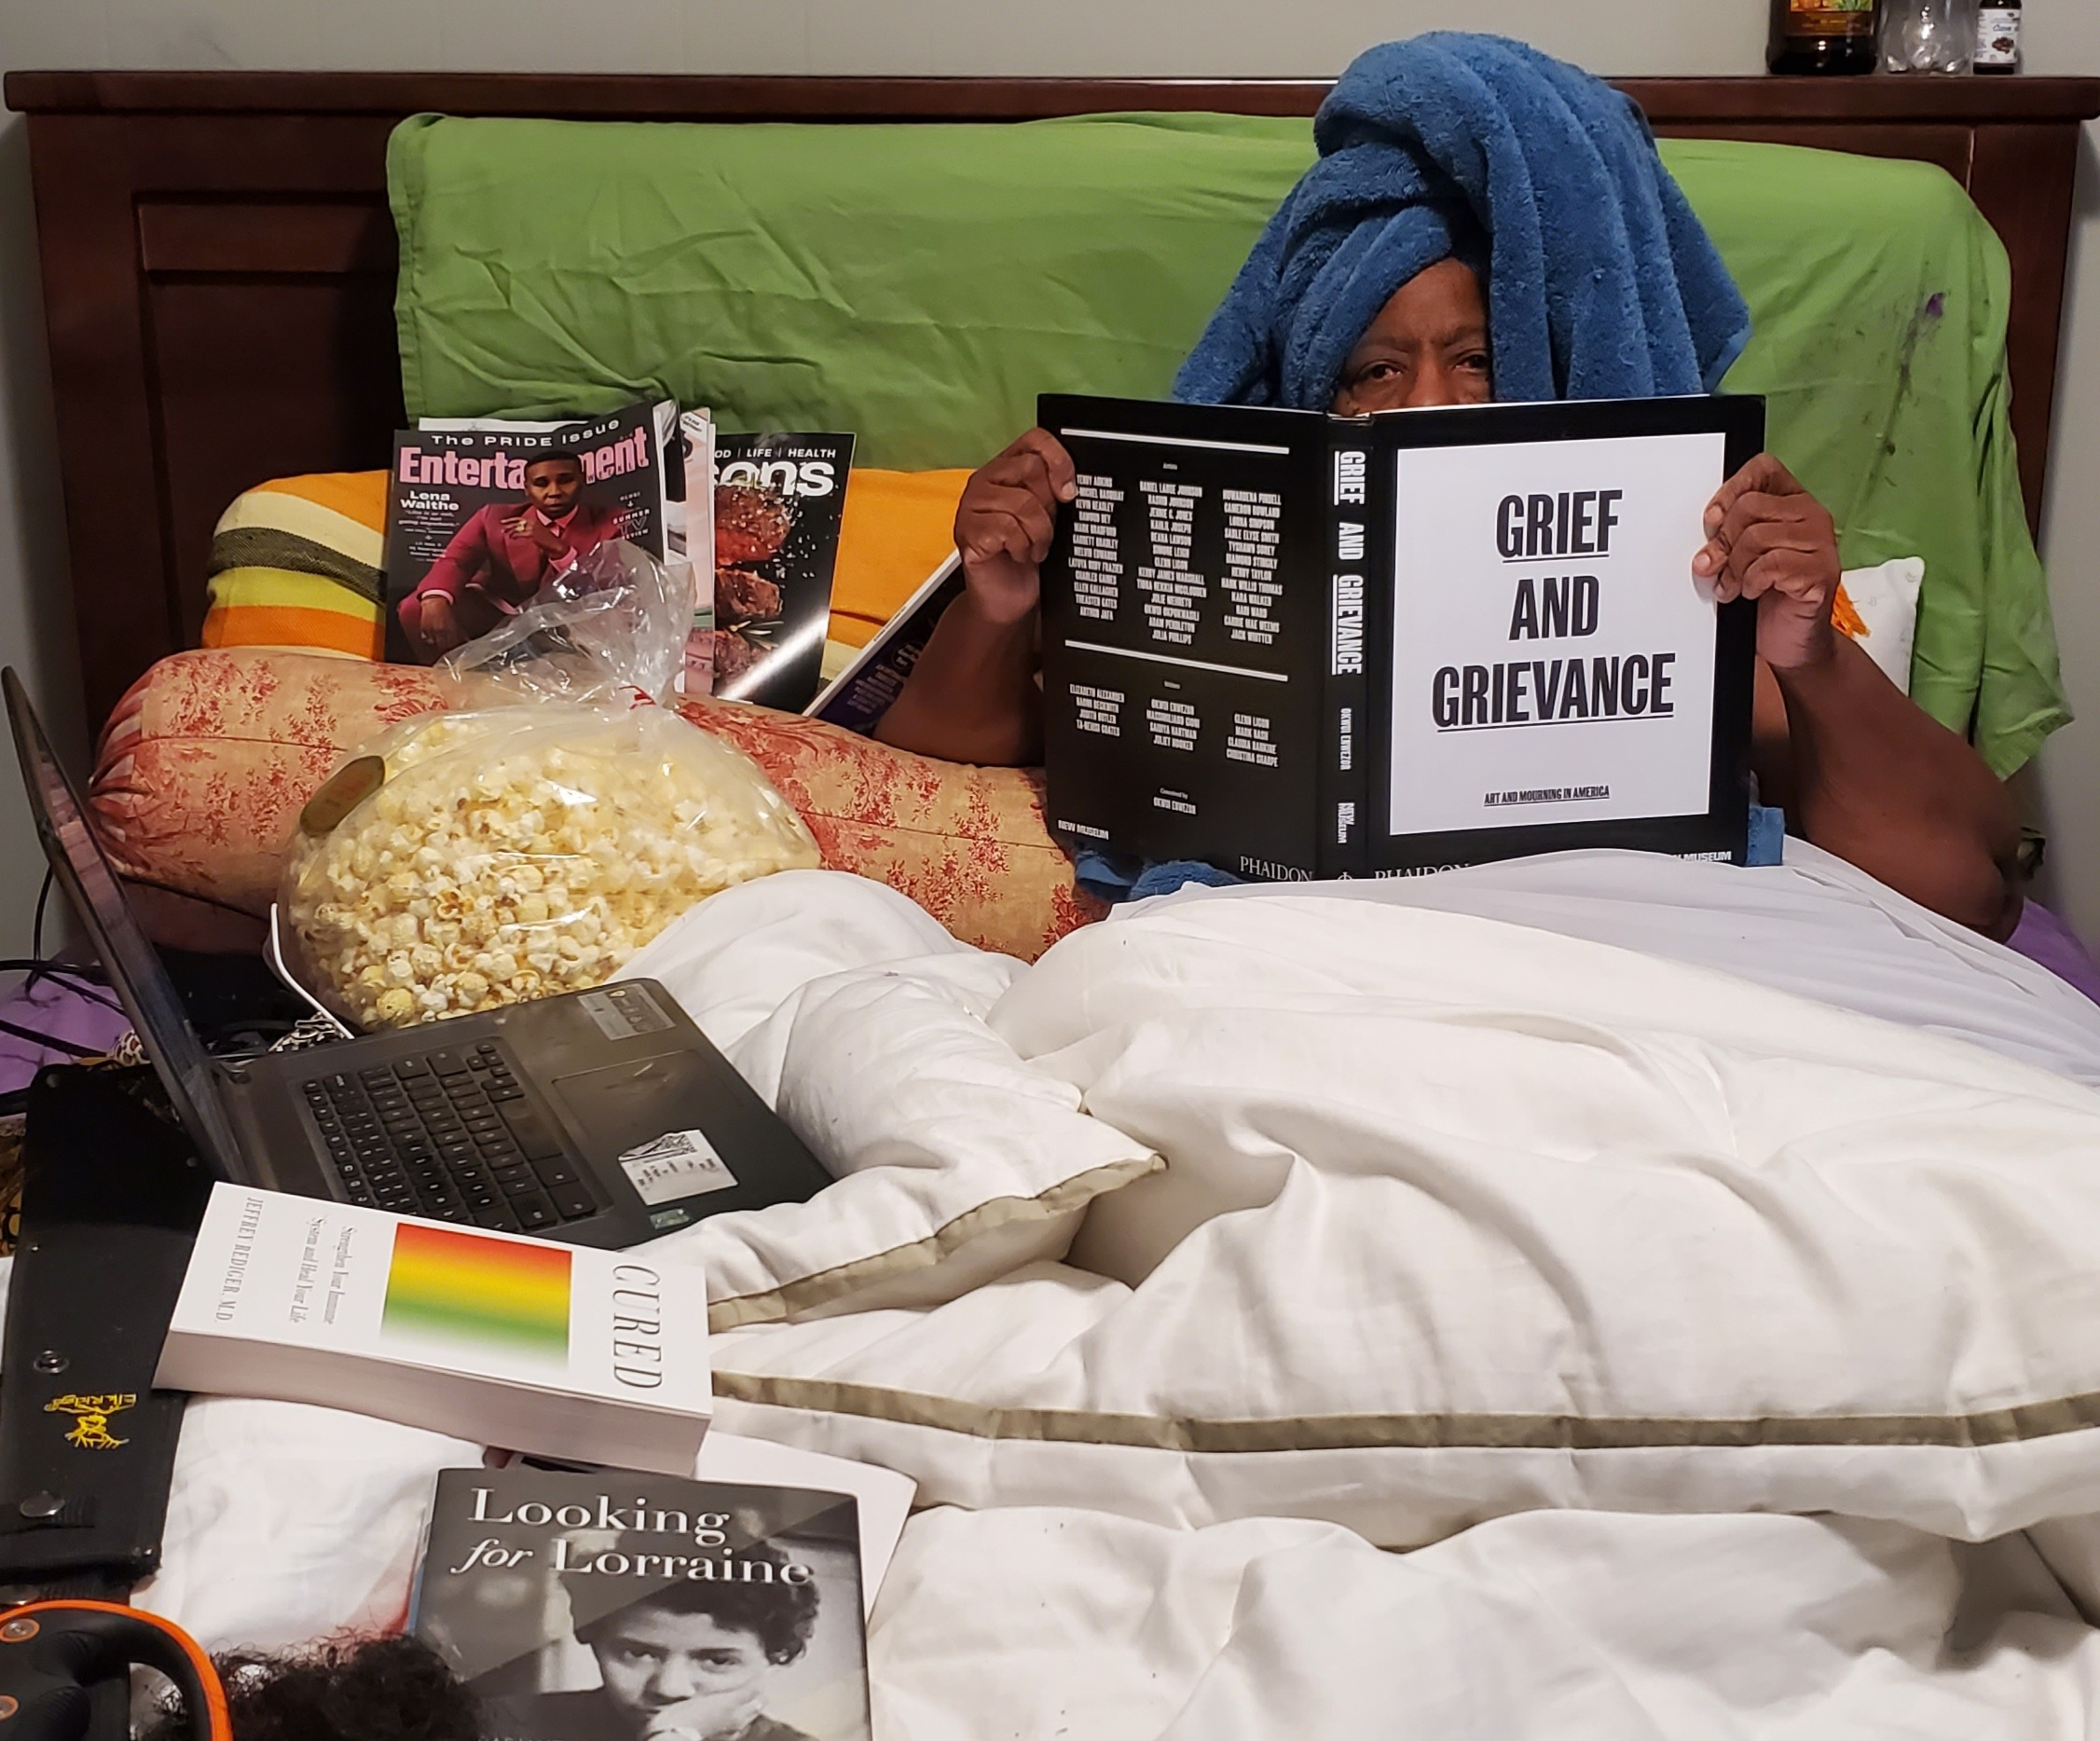 """Person with dark skin and head wrapped in blue towel sits in bed full of books, holding up a book whose cover reads """"GRIEF AND GRIEVANCE."""""""